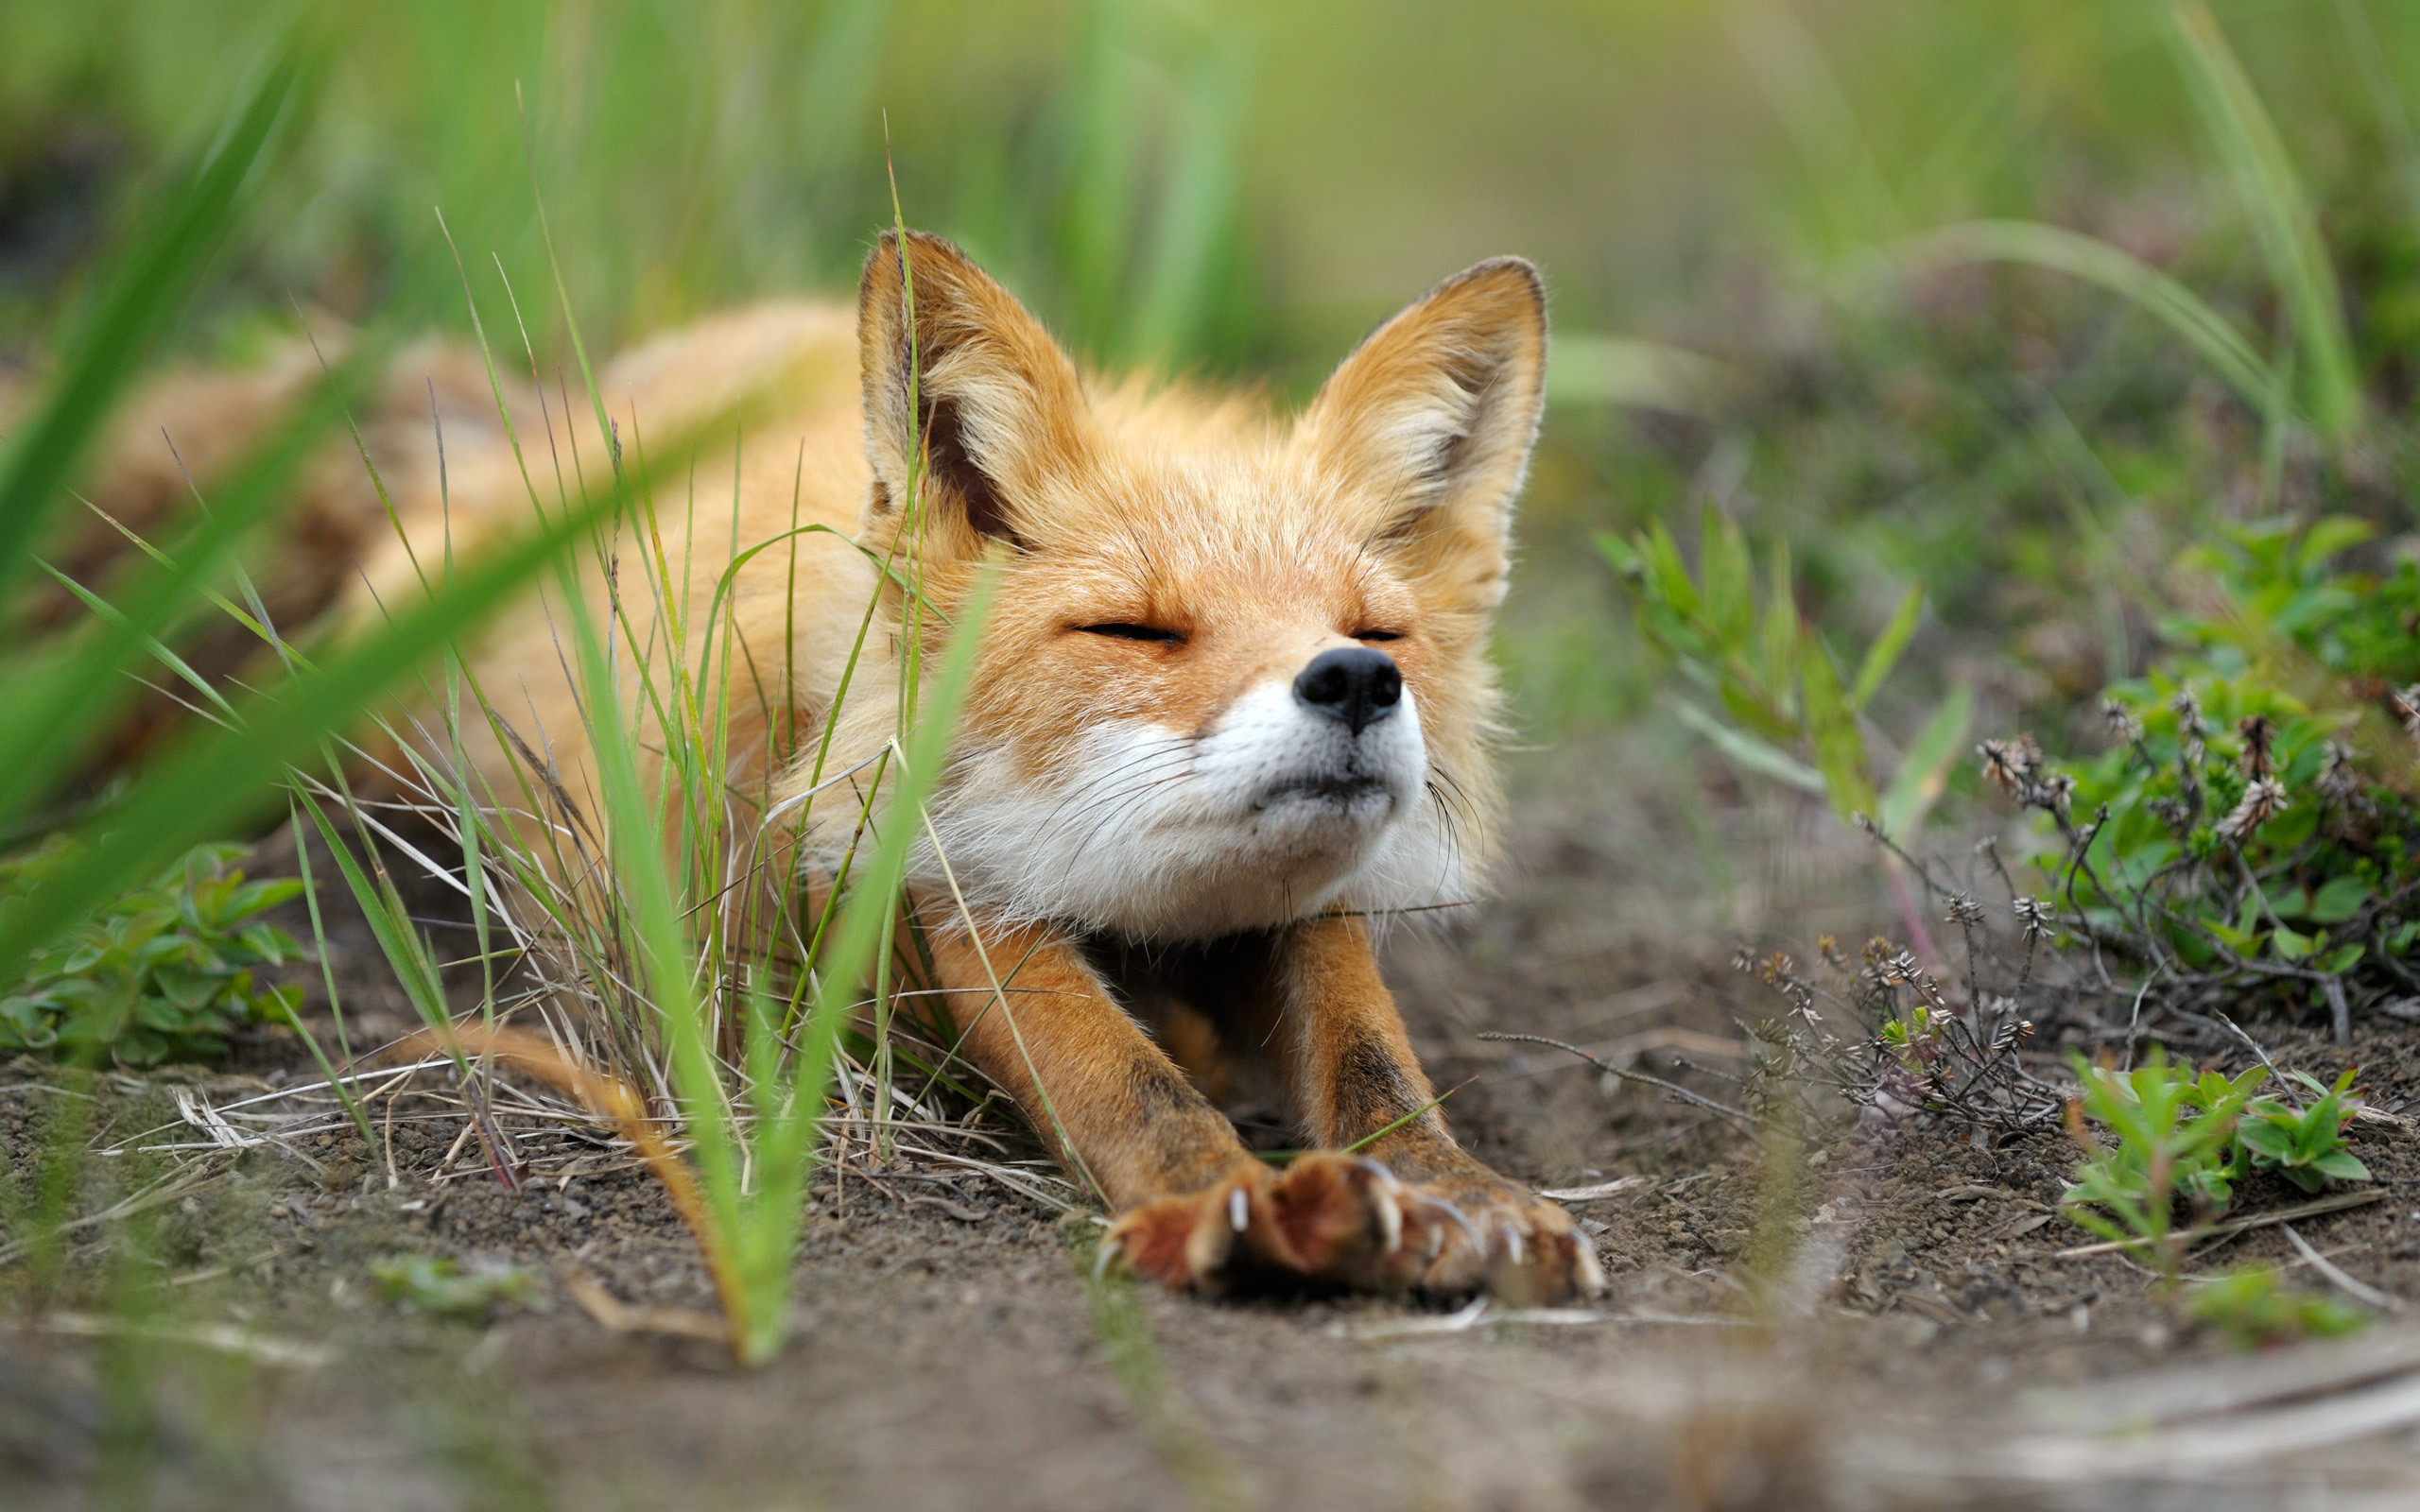 Cute baby fox | Widescreen and Full HD Wallpapers